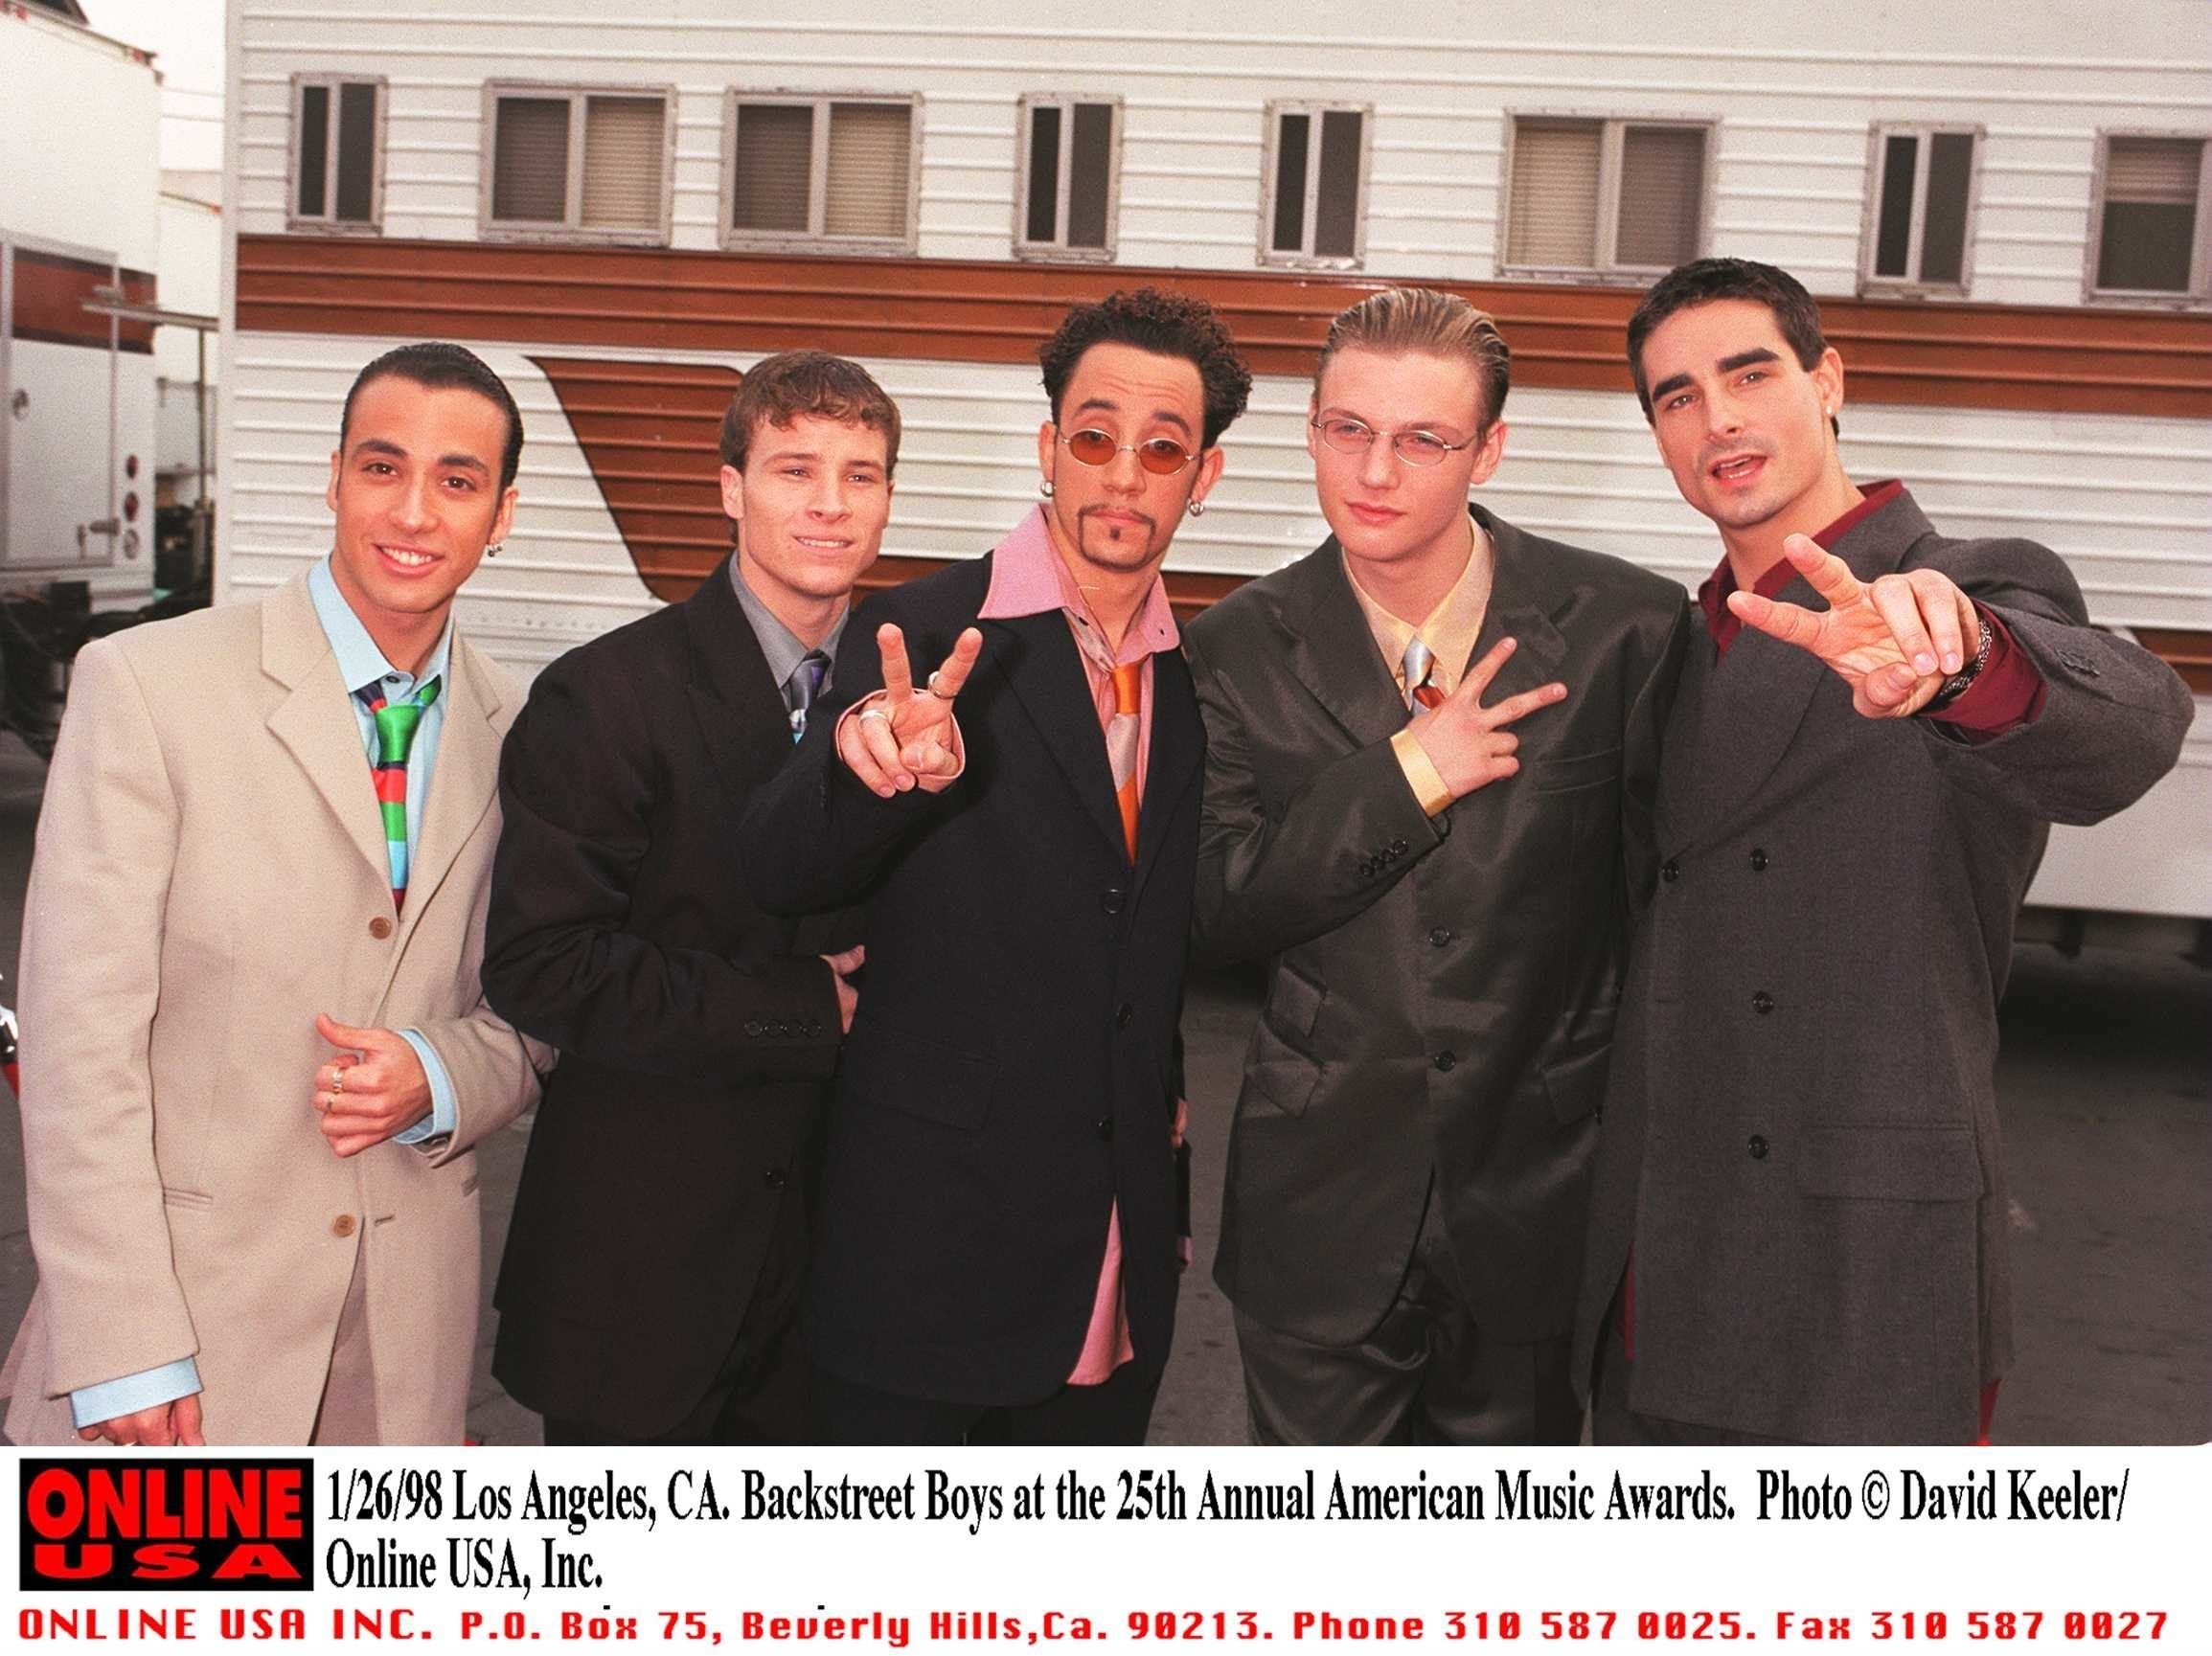 1/26/98 Los Angeles, CA. Backstreet Boys at the 25th Annual American Music Awards rehearsal.